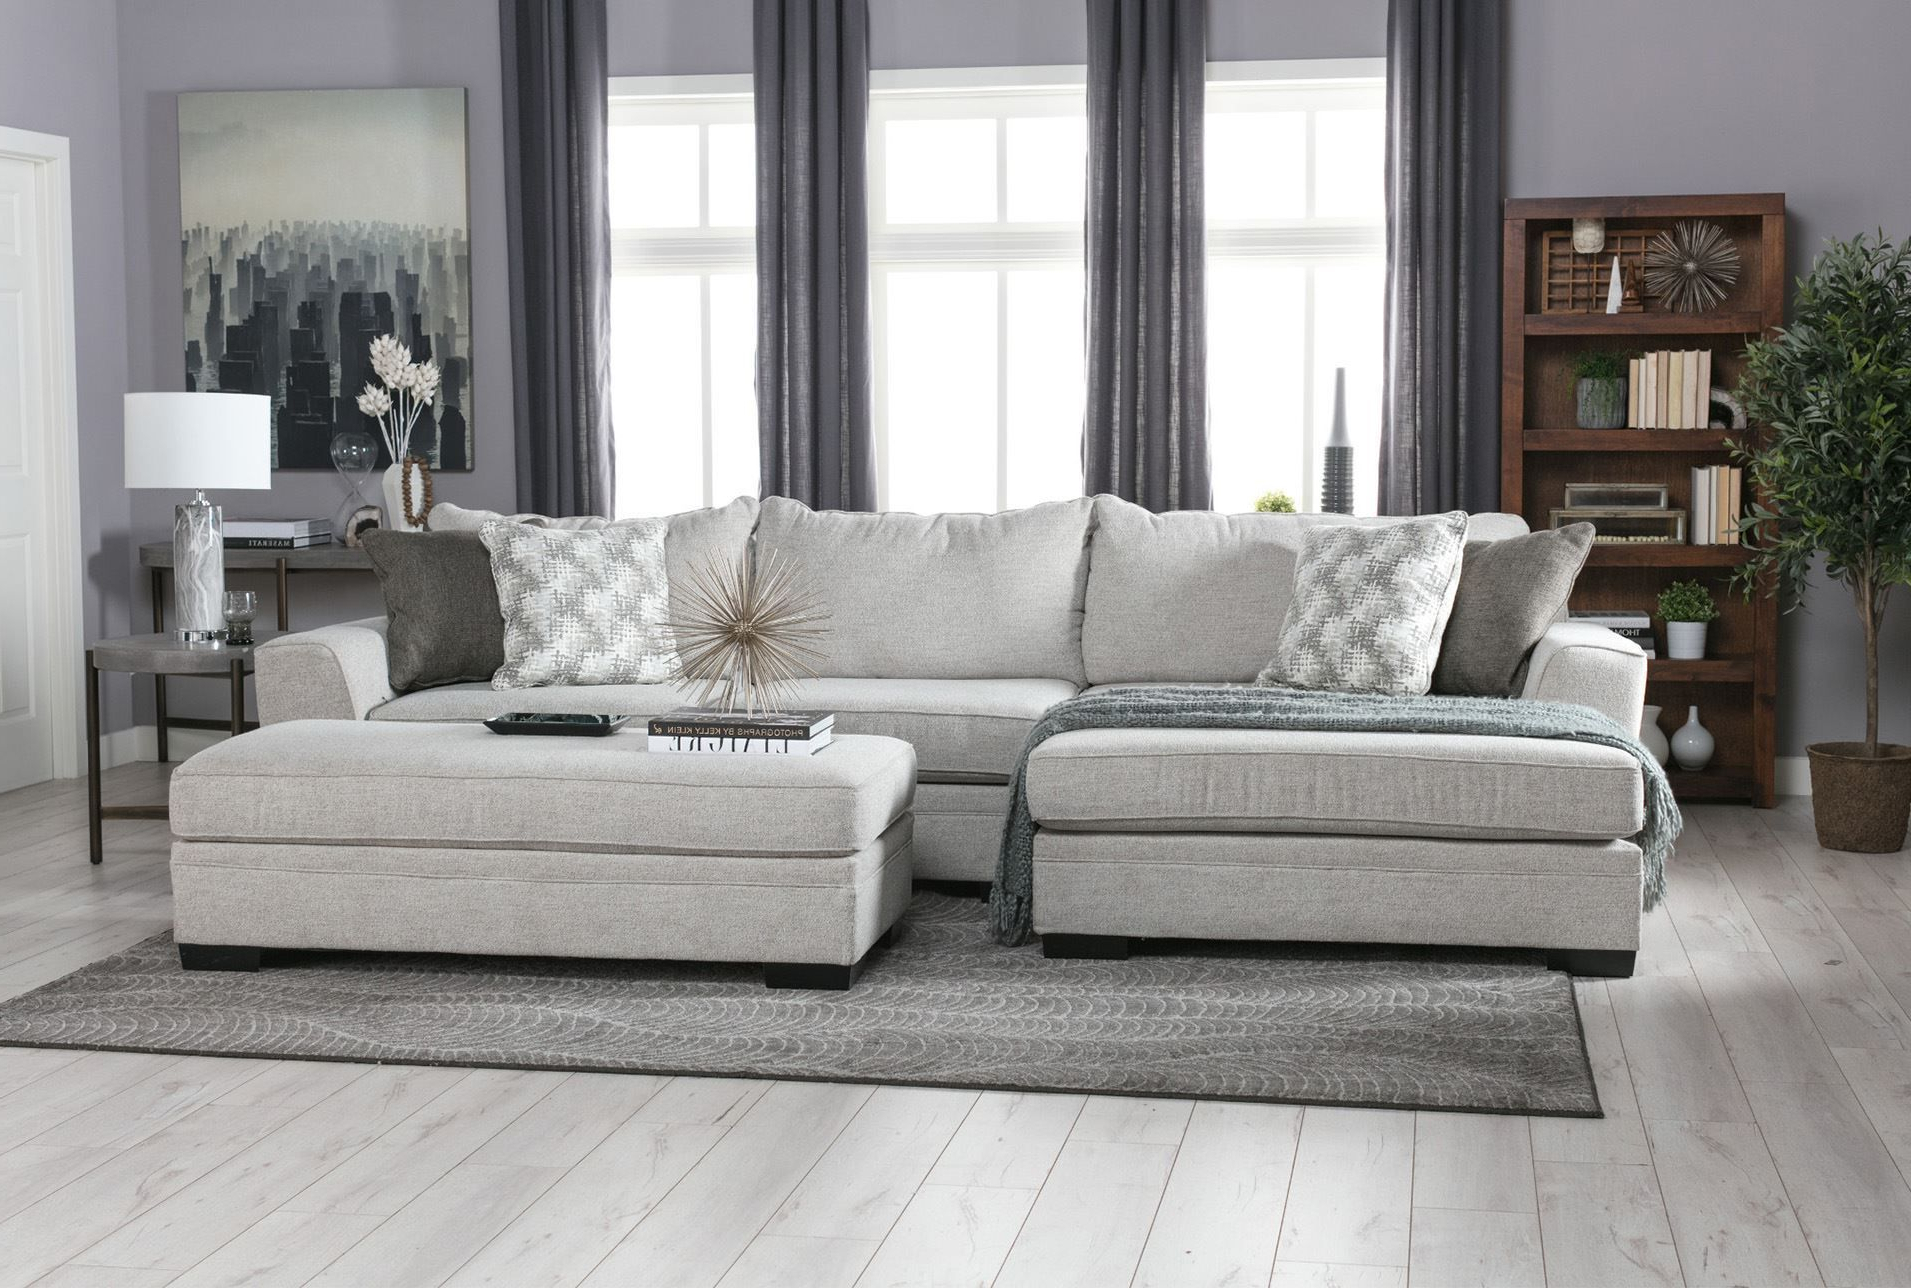 Delano 2 Piece Sectional W/laf Oversized Chaise In (View 2 of 20)